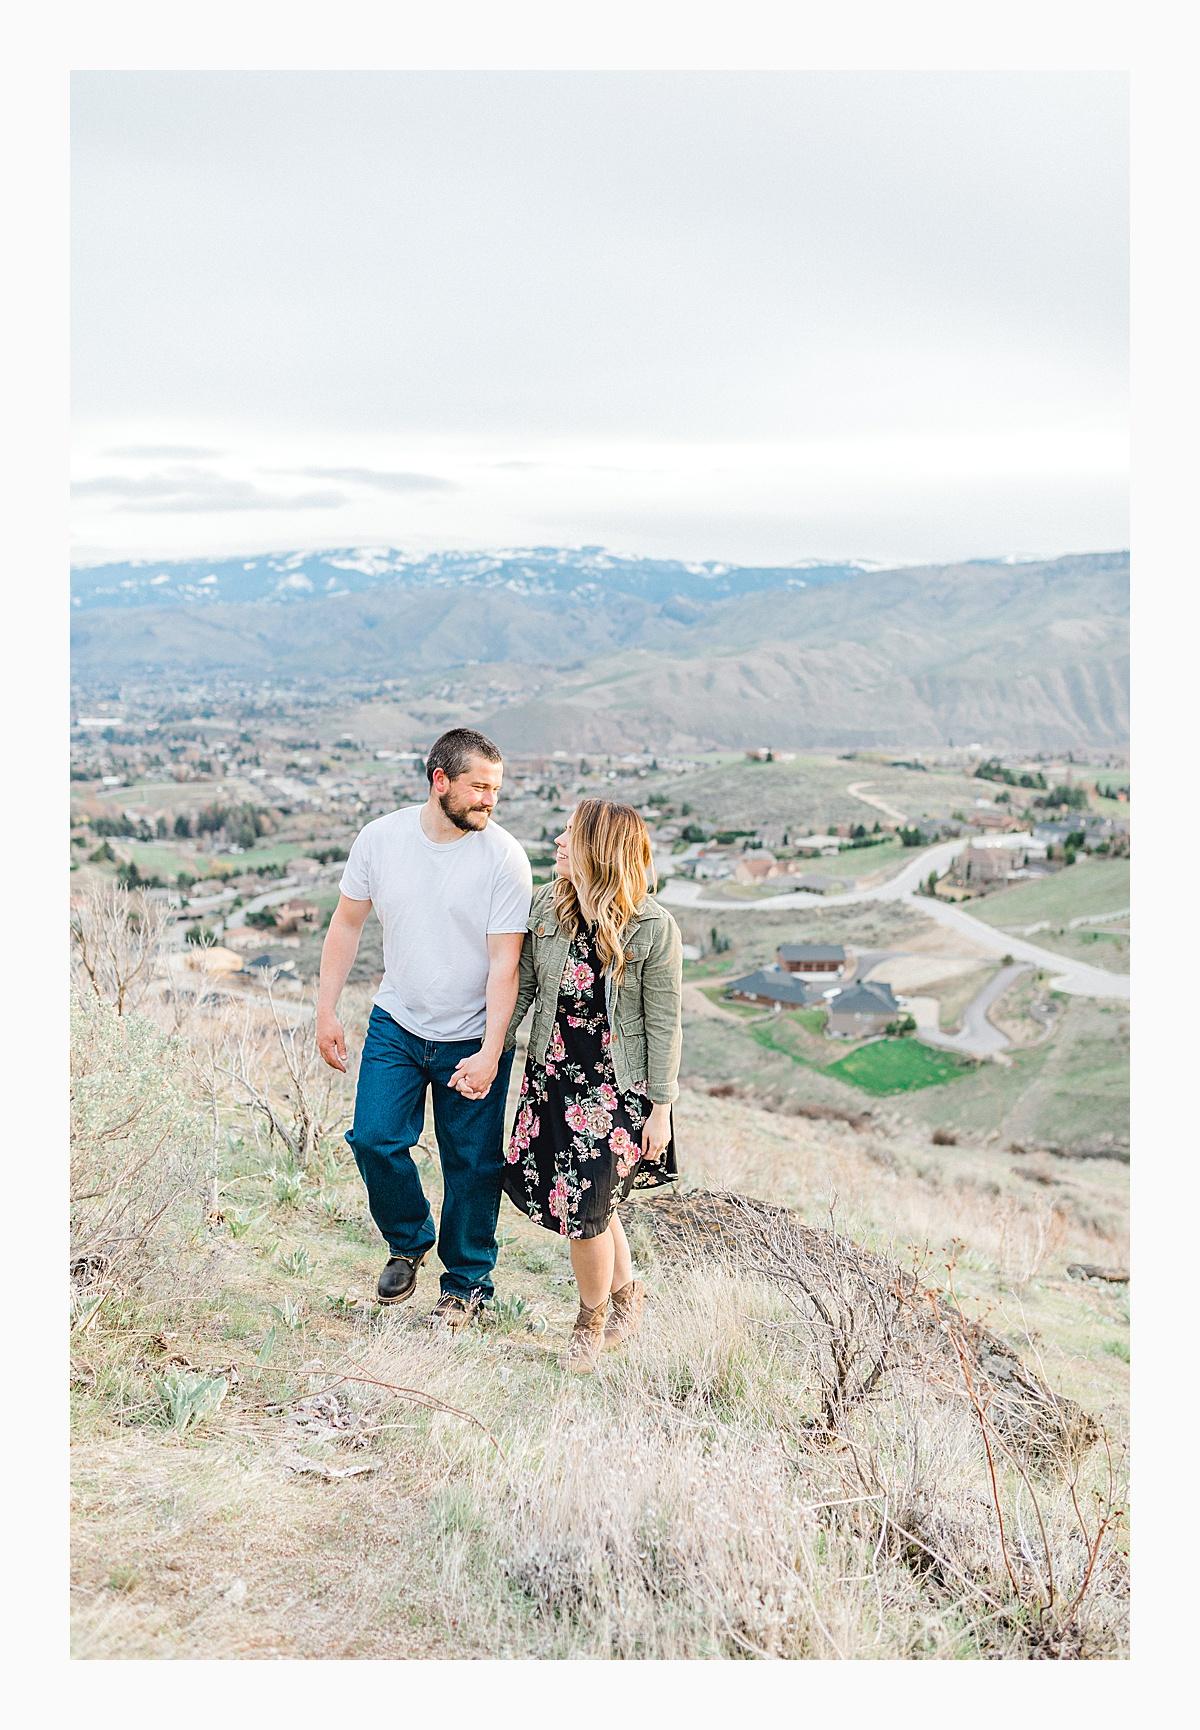 Pacific Northwest Engagement Session in the Sagebrush with Emma Rose Company who is a light and airy wedding photographer based in Seattle, Washington_0042.jpg